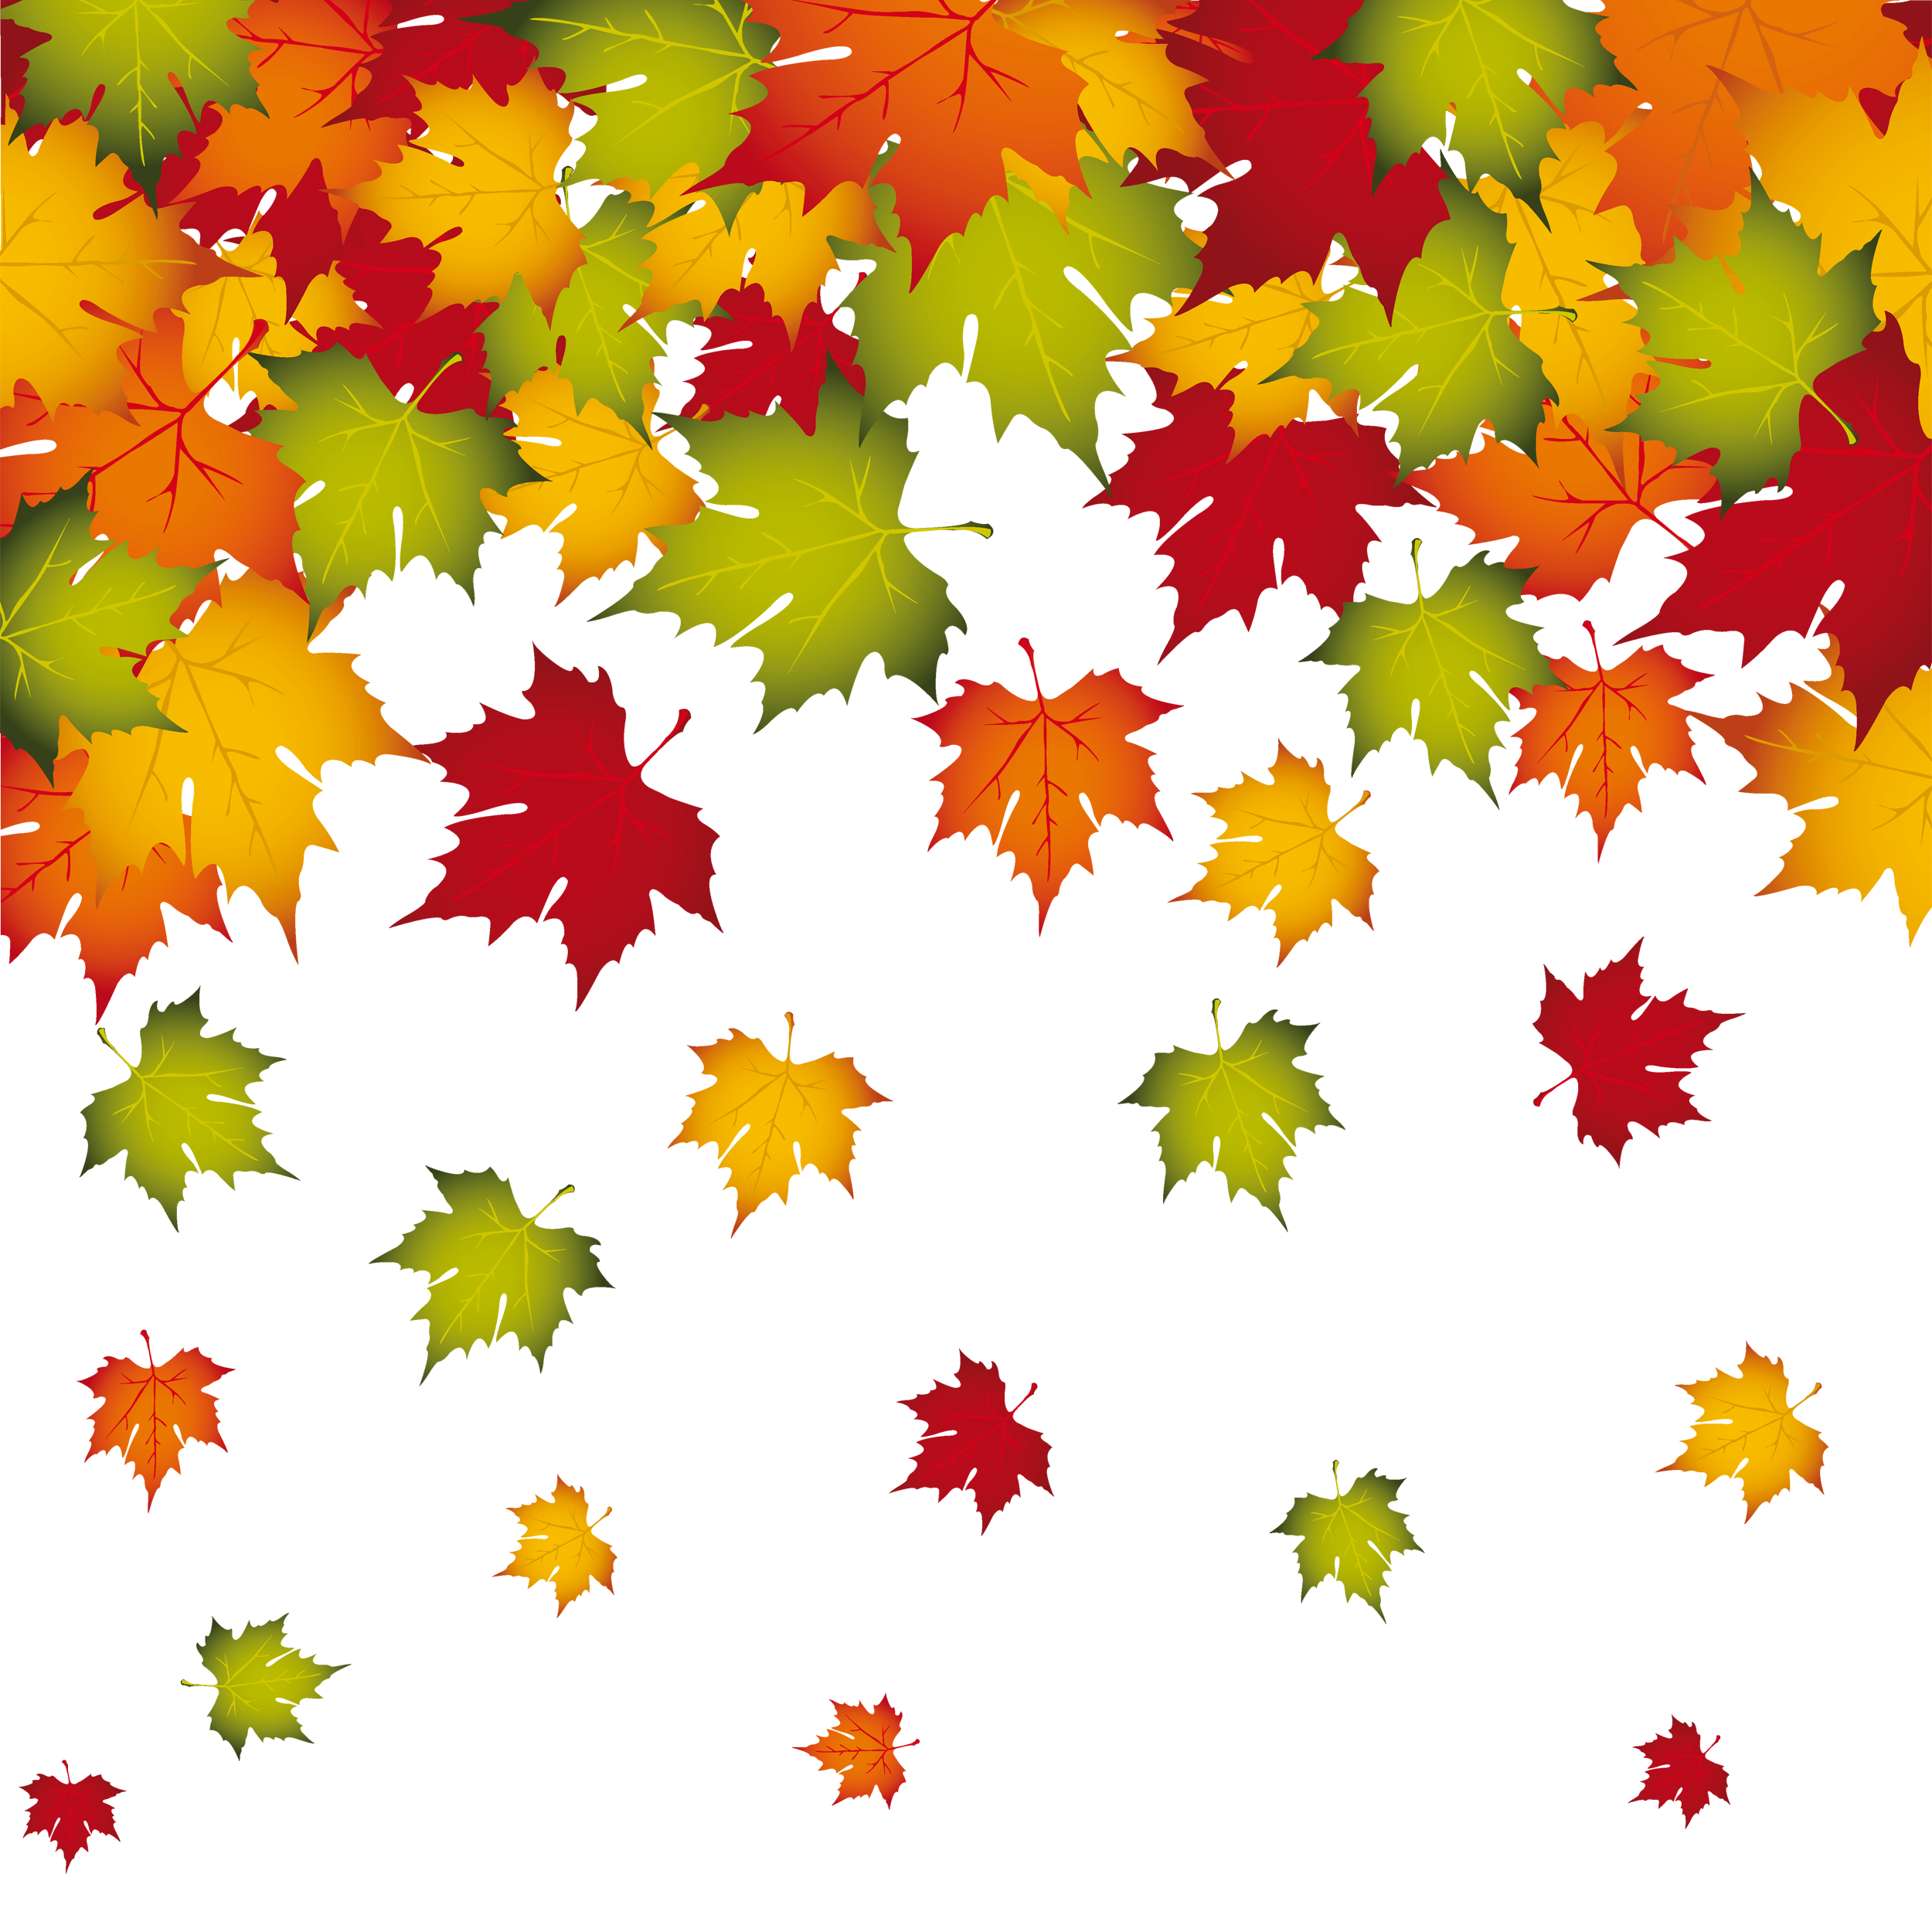 Fall leaves border labels png. Transparent decoration image gallery